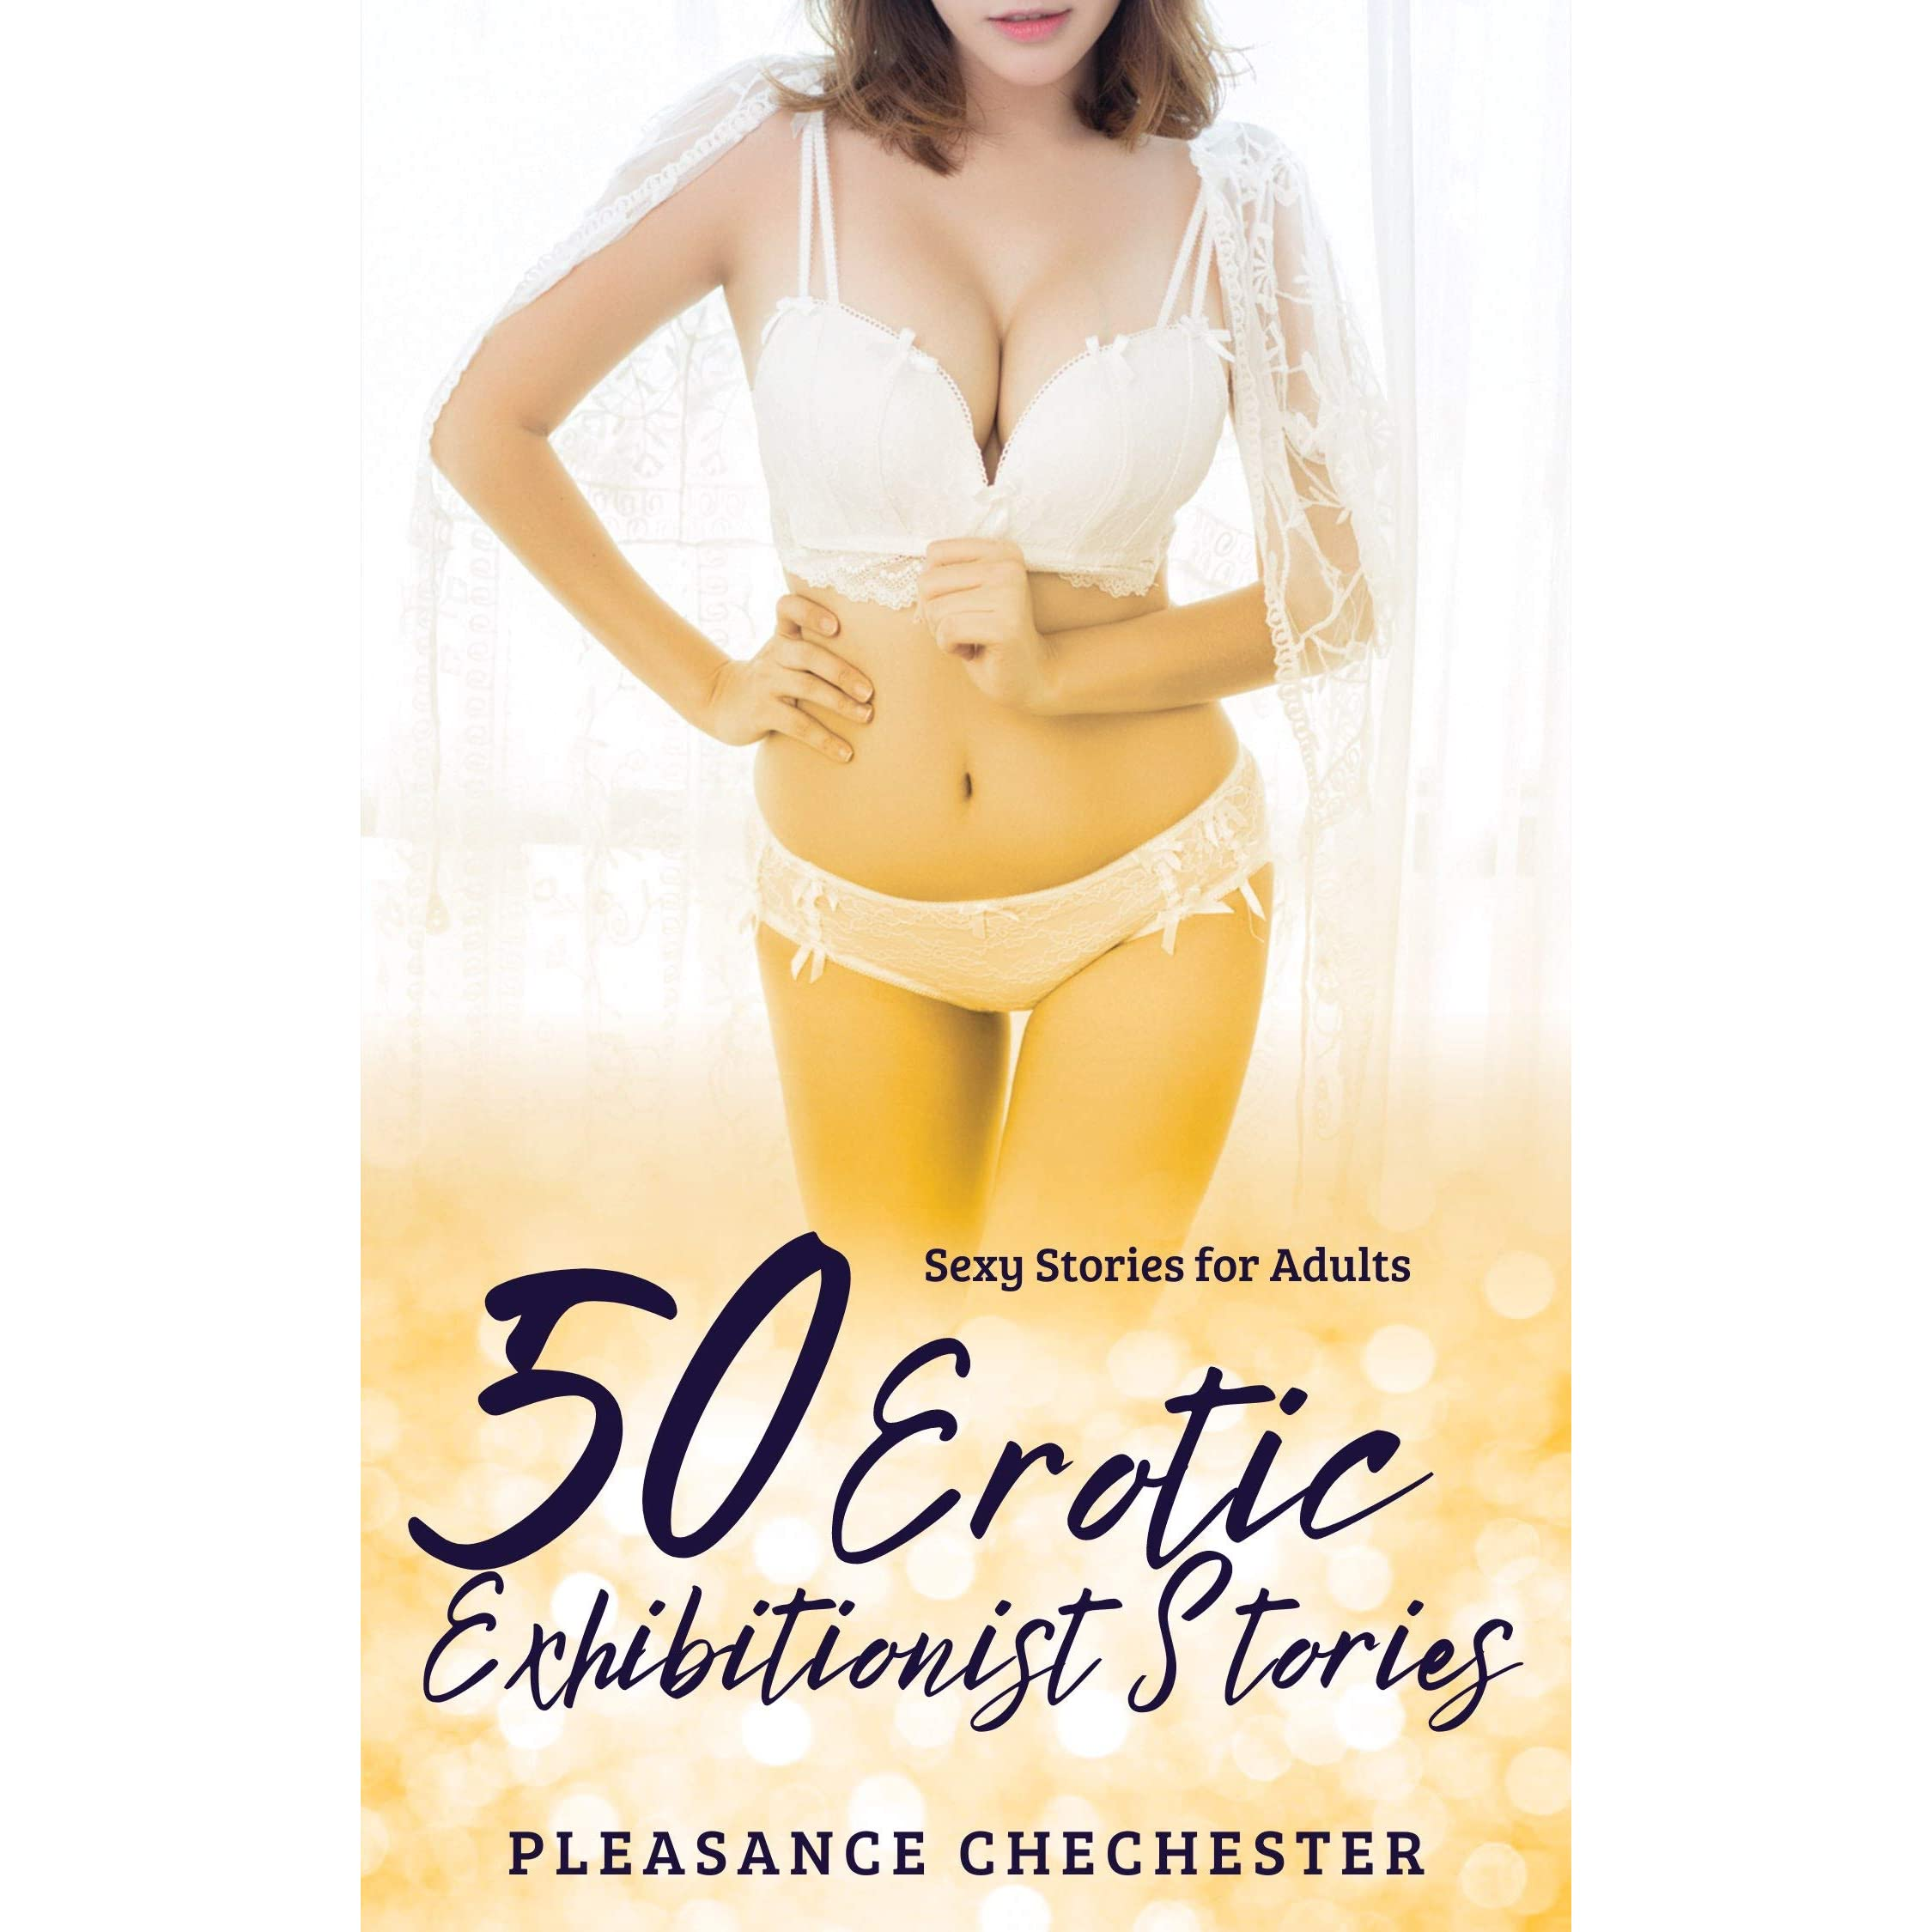 50 Erotic Exhibitionist Stories Sexy Stories For Adults By Pleasance Chechester Read the latest writing about exhibitionist. 50 erotic exhibitionist stories sexy